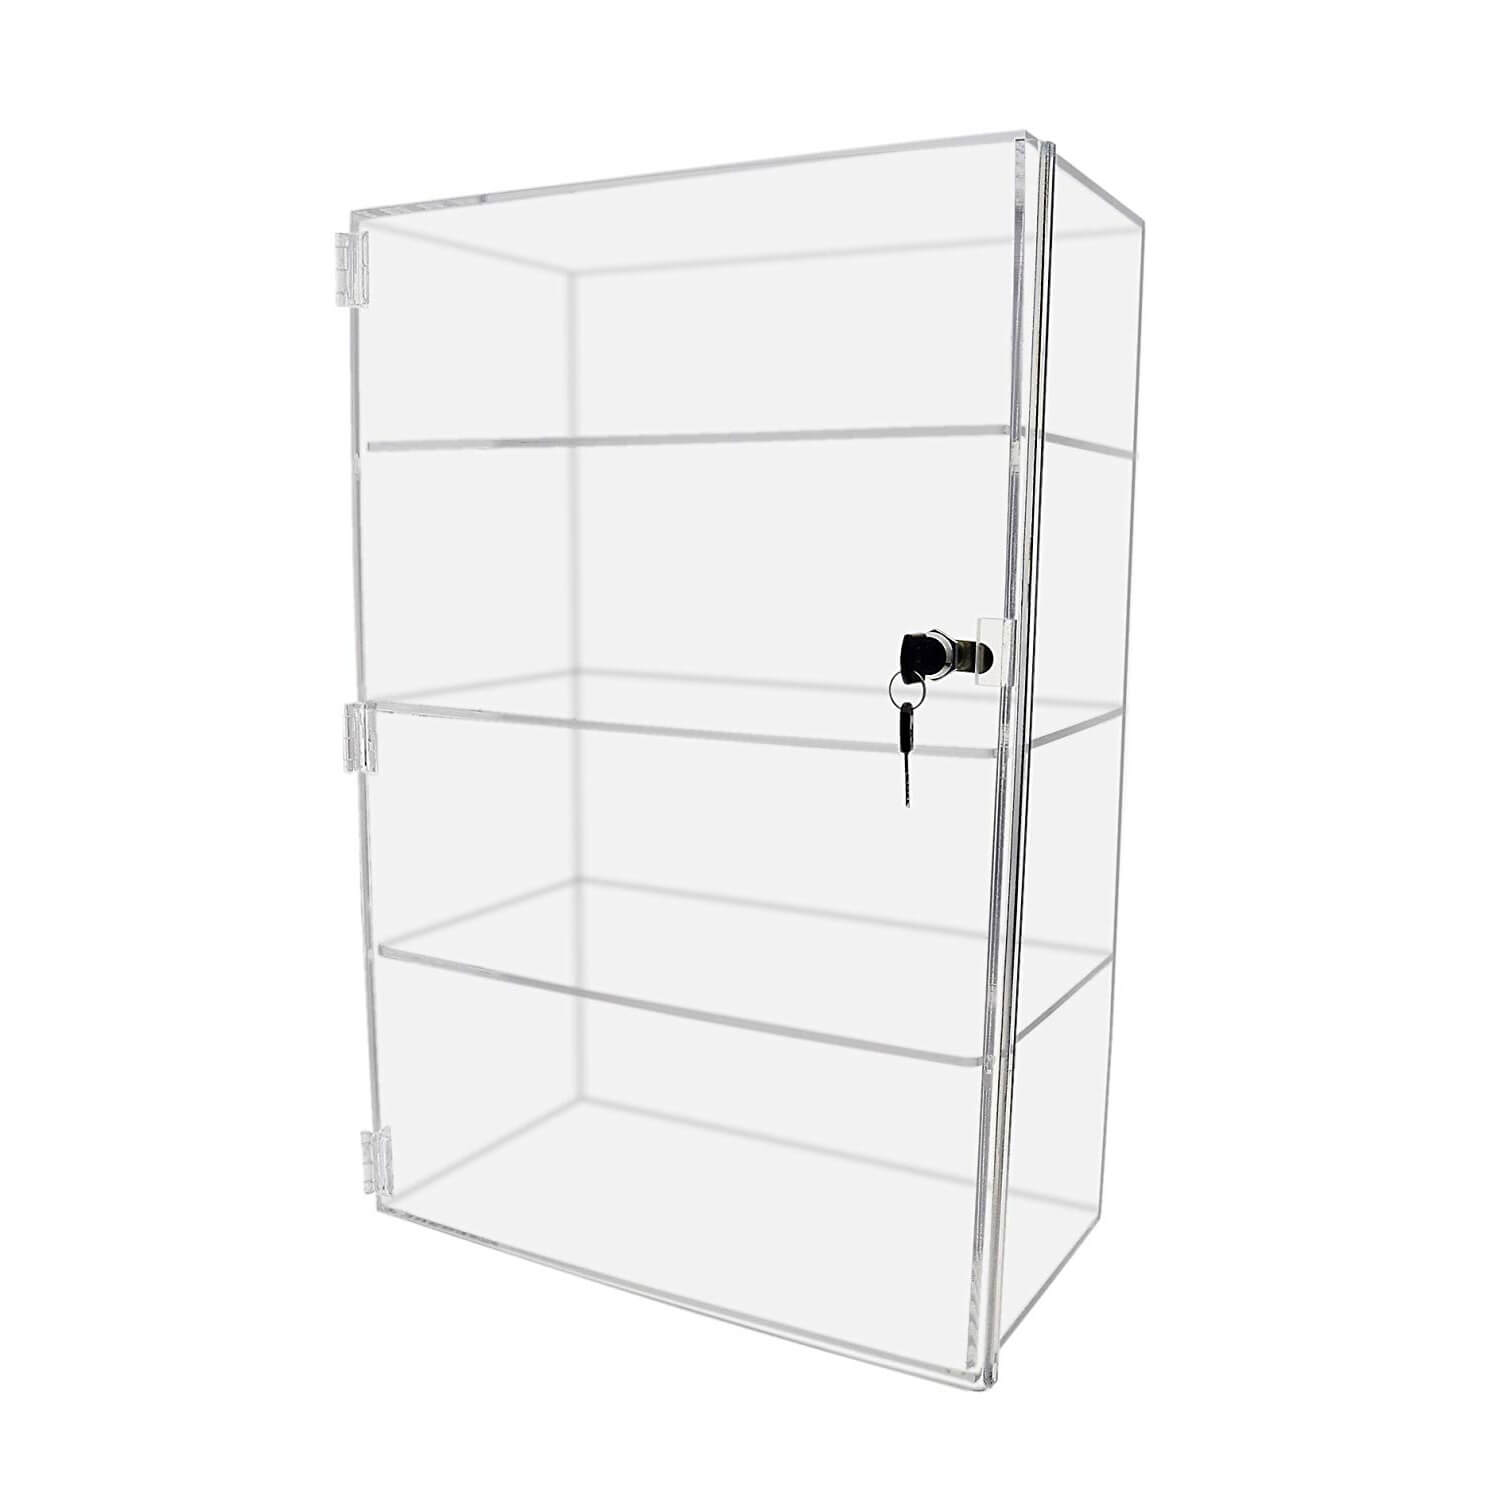 Acrylic Display Case Manufacturer With